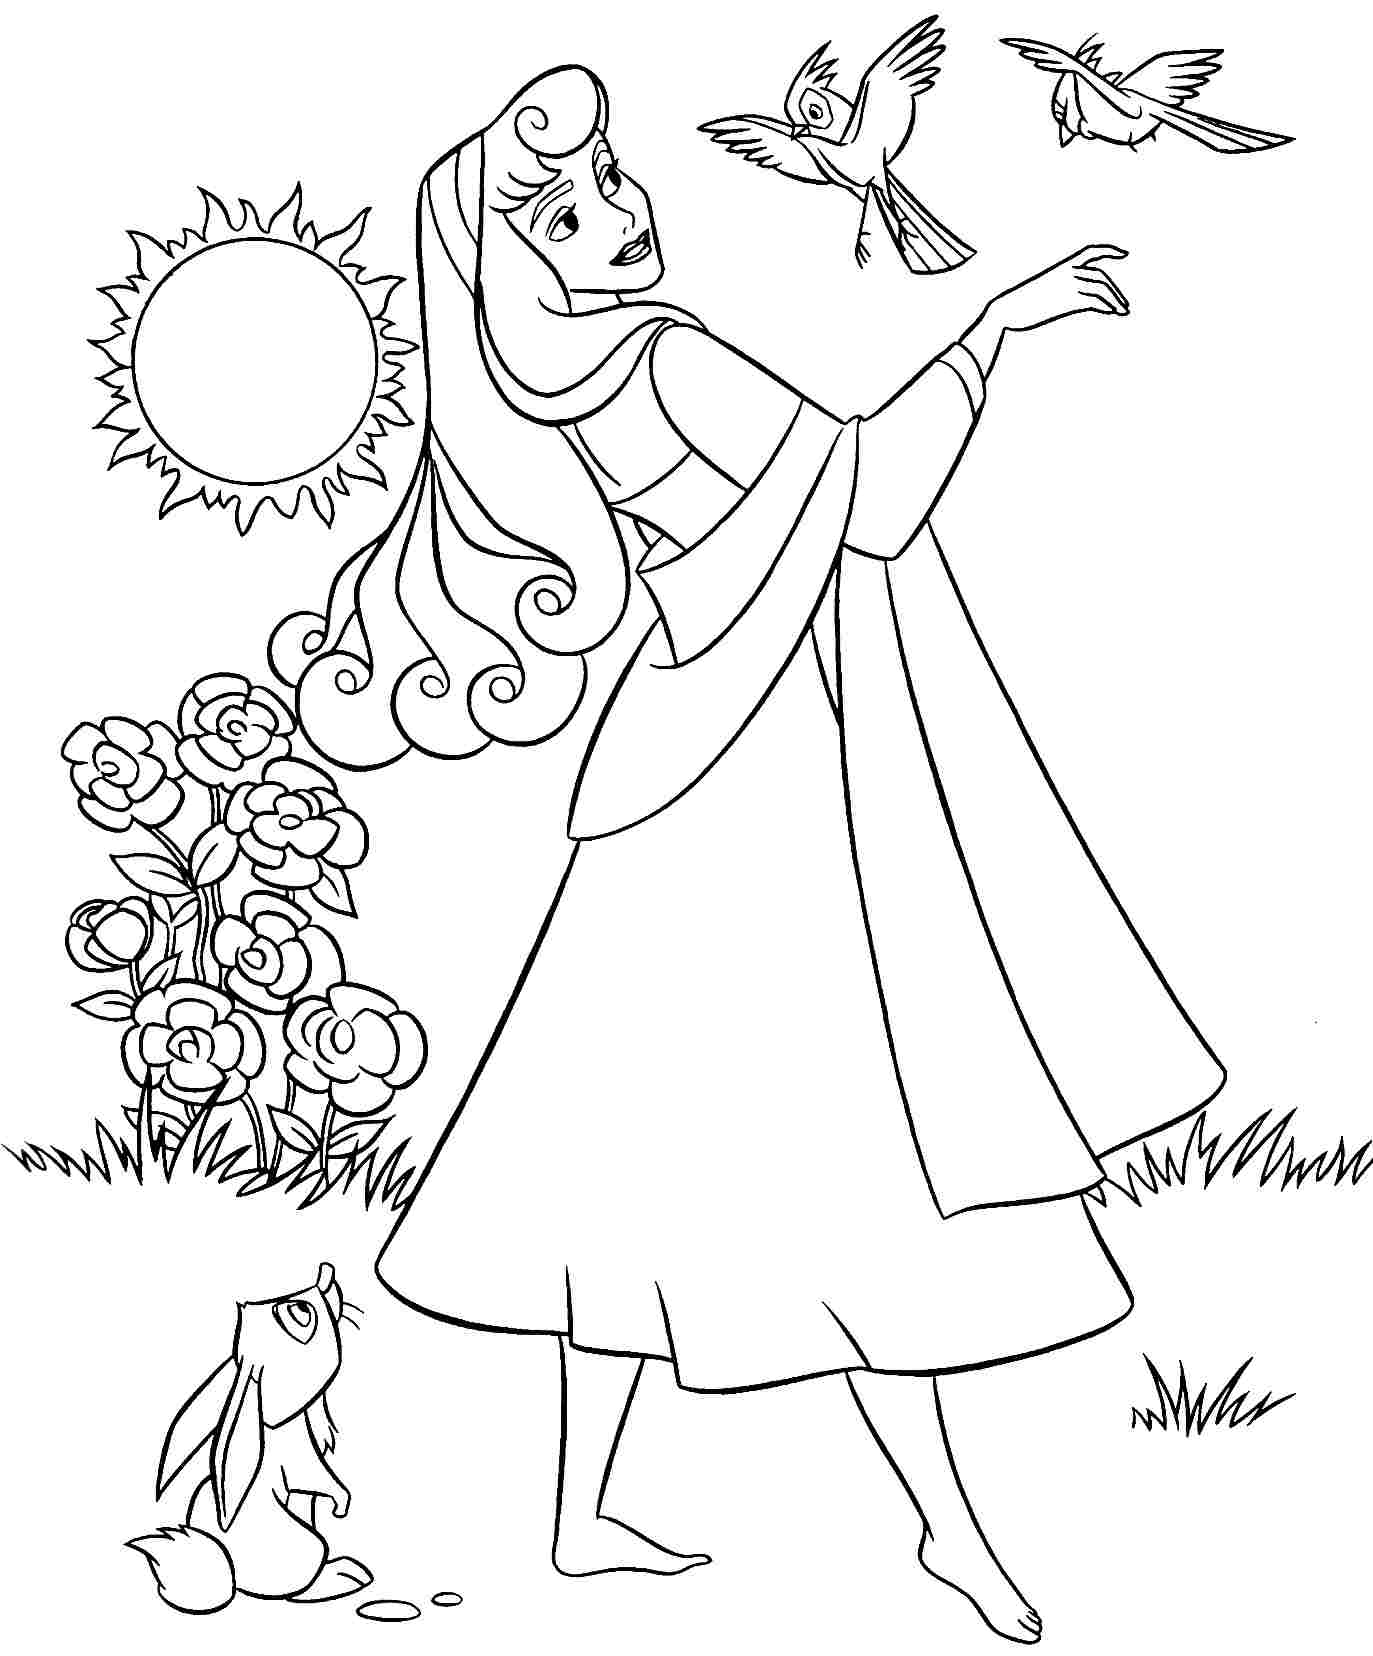 Sleeping_Beauty_Disney_Coloring_Pages_02